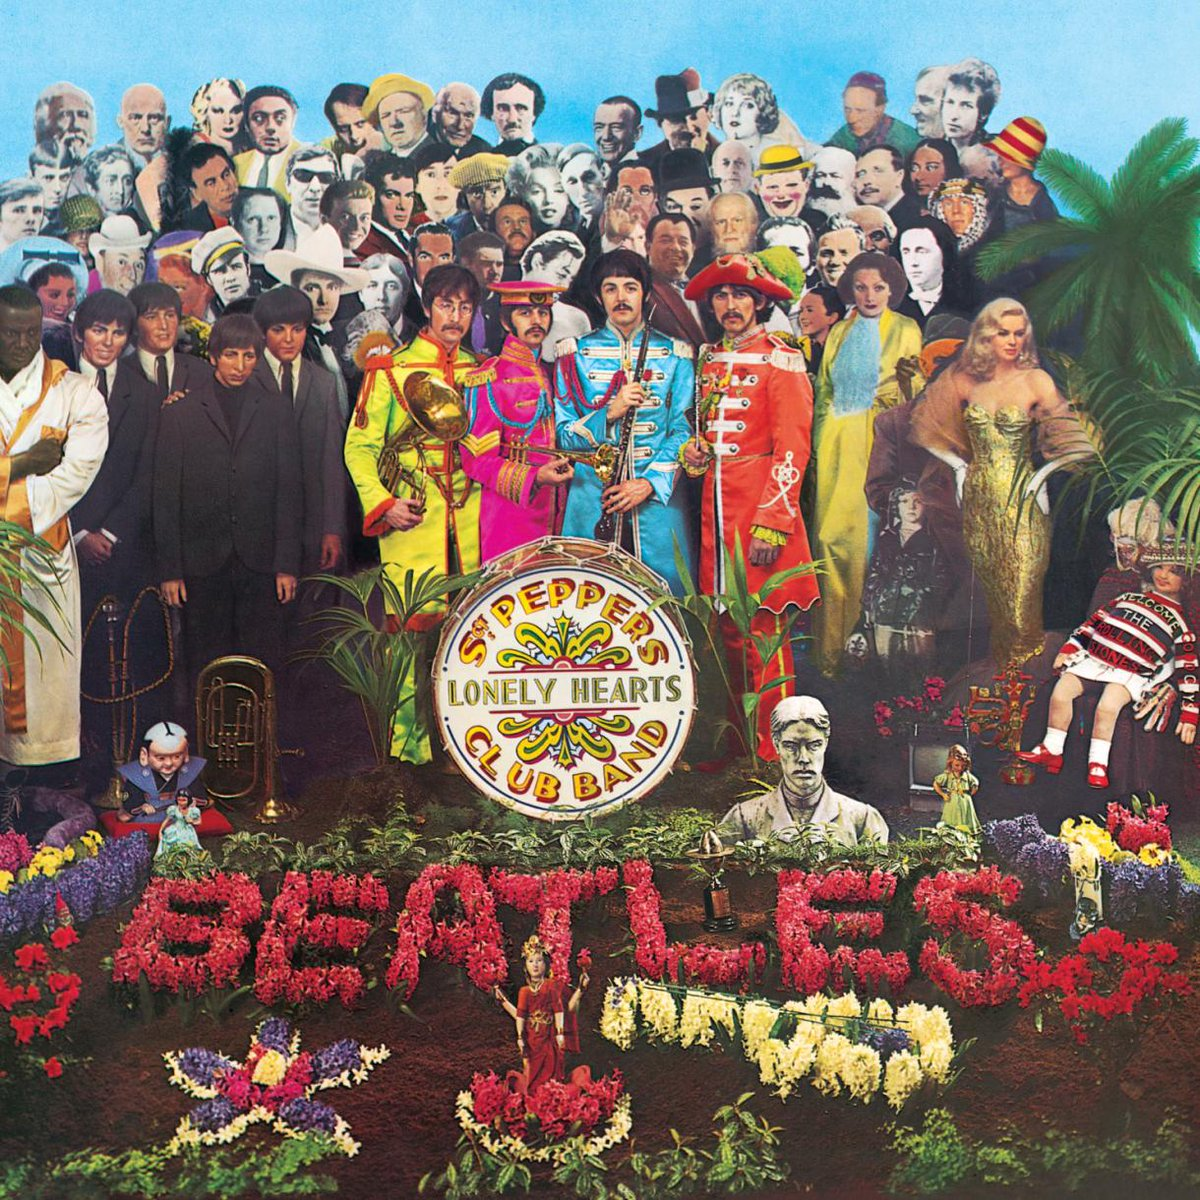 2 June 1967: The Beatles release their #album Sgt. Pepper's Lonely Hearts Club Band in the United States. #TheBeatles #music #rocknroll #history #ad https://amzn.to/2Mn7coBpic.twitter.com/9HoGW5Ktps